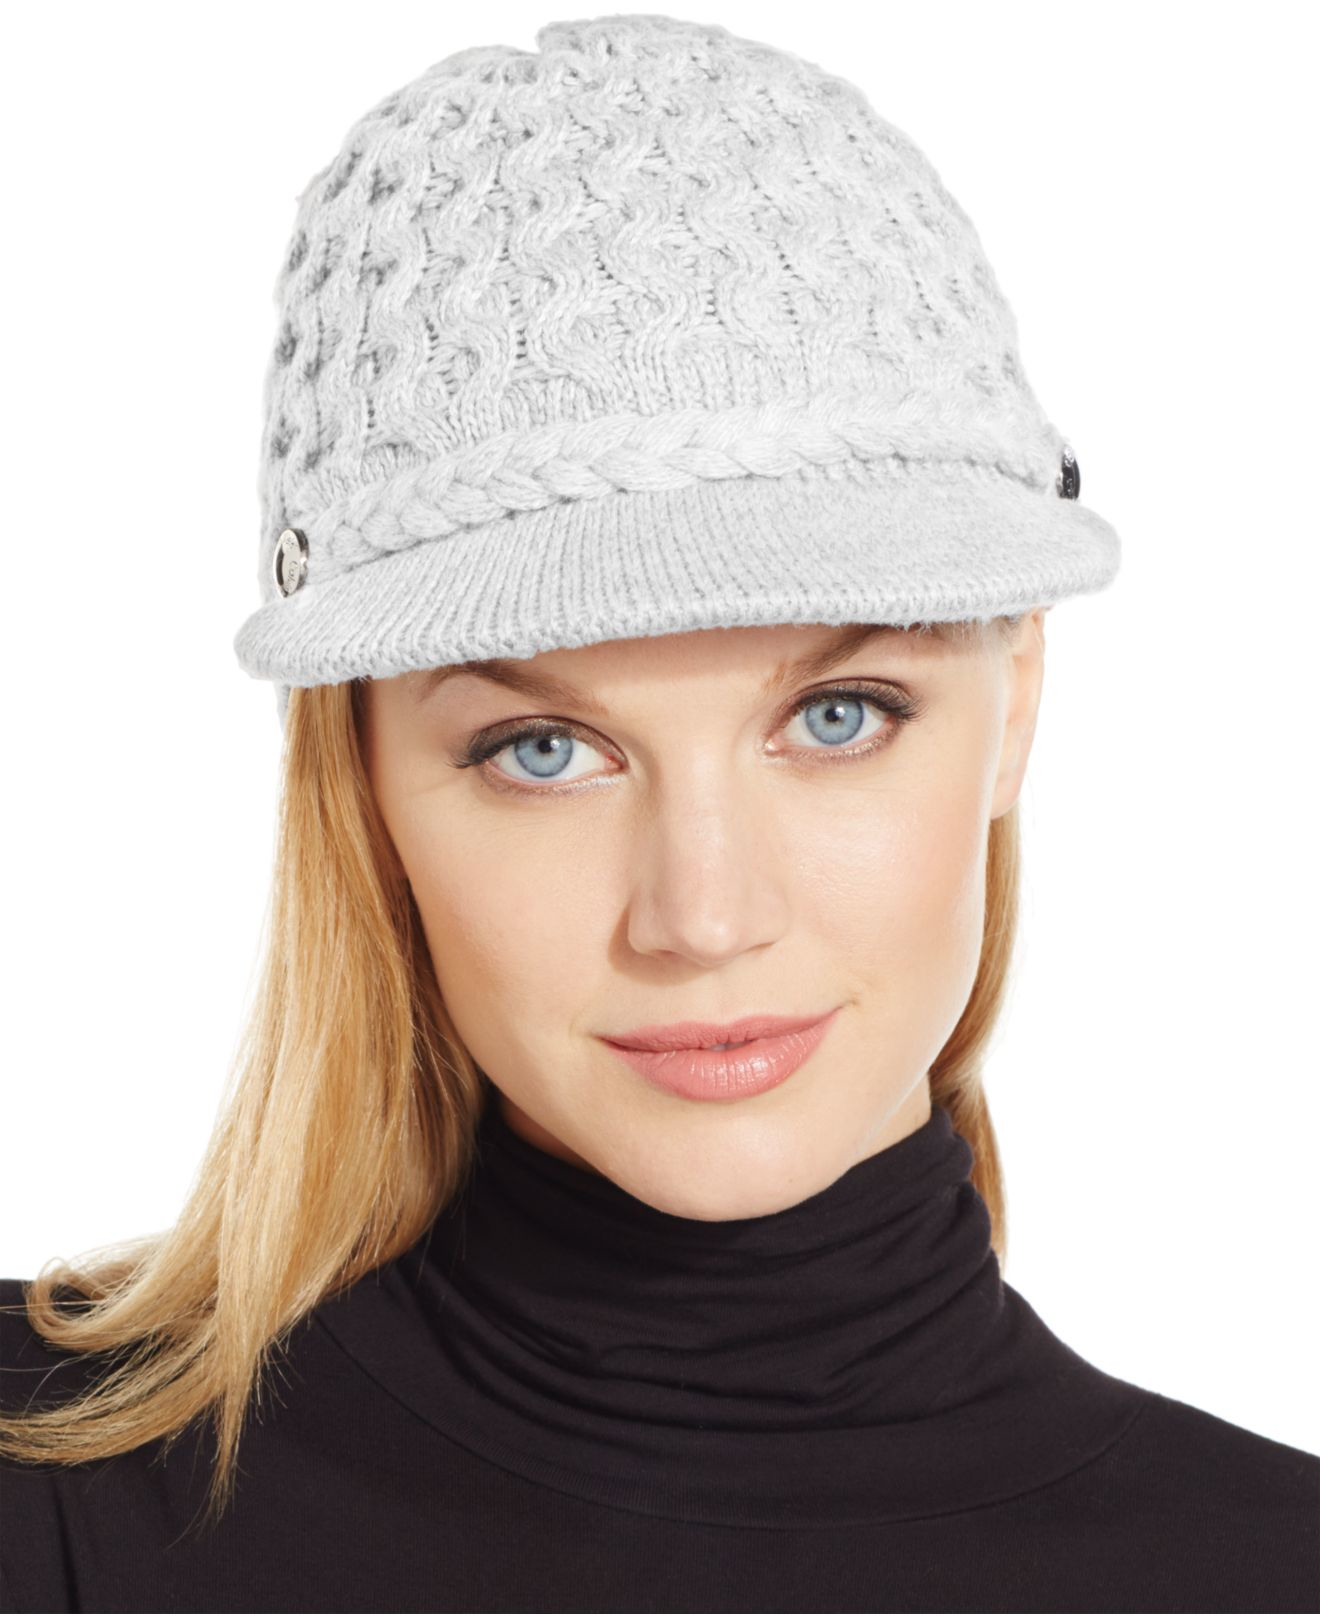 calvin klein honeycomb cable newsboy hat in gray creme